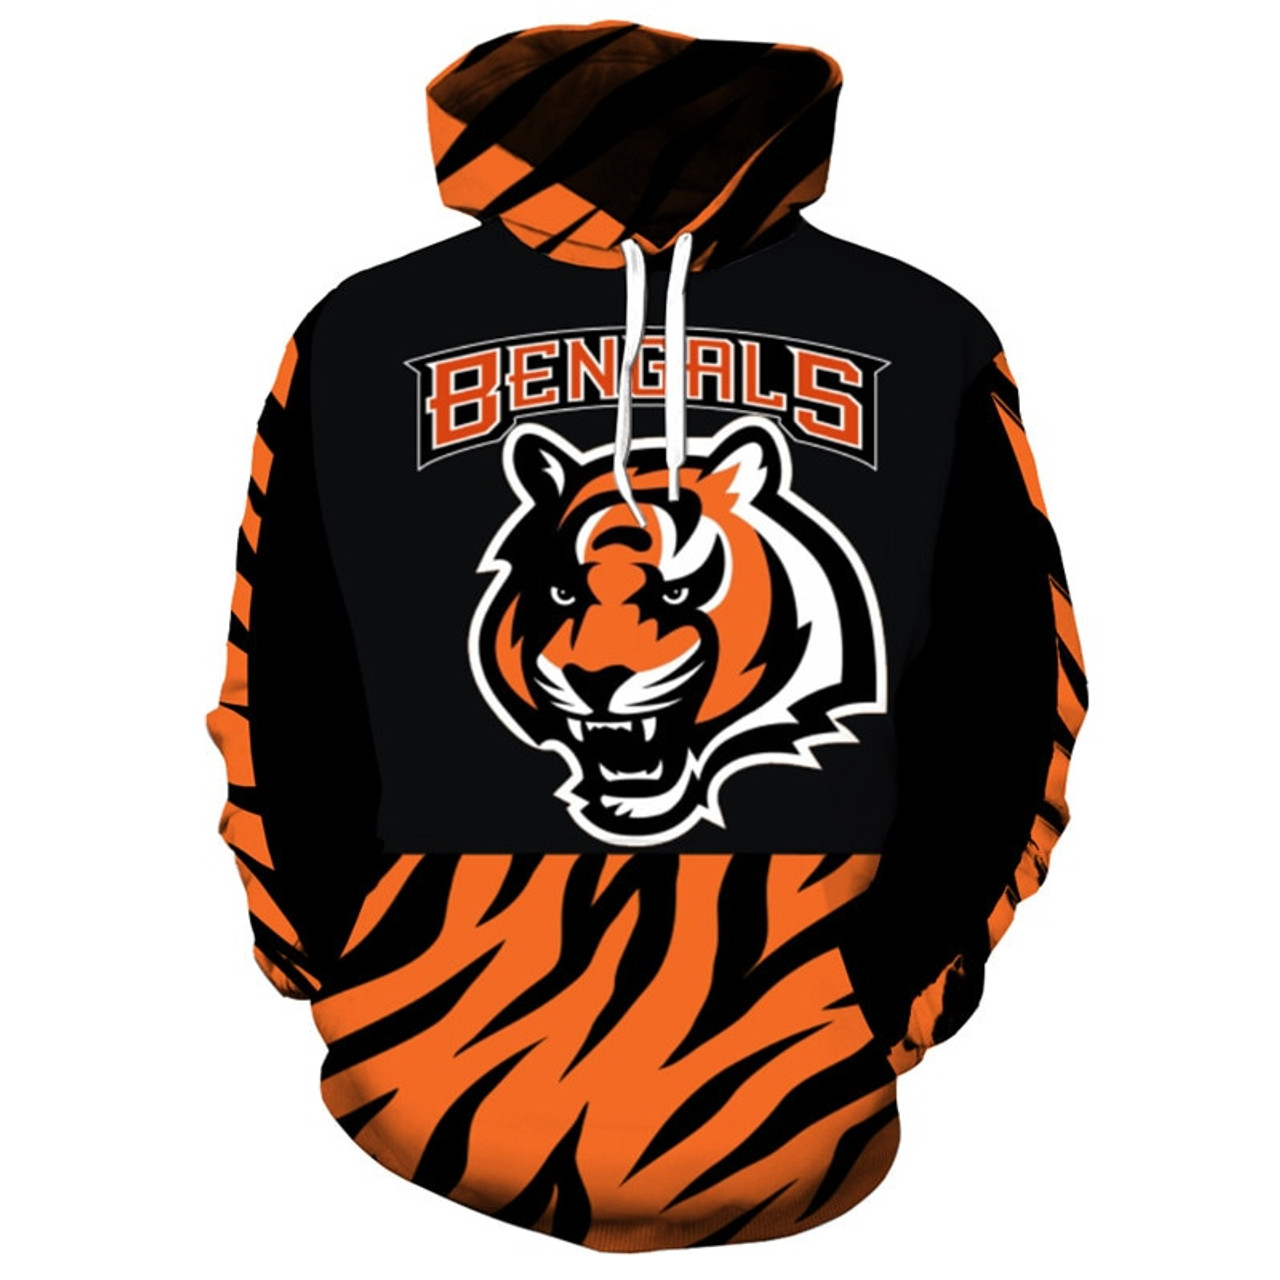 **(OFFICIALLY-LICENSED-N.F.L.CINCINNATI-BENGALS-TRENDY-PULLOVER-TEAM-HOODIES/NICE-CUSTOM-3D-EFFECT-GRAPHIC-PRINTED-DOUBLE-SIDED-ALL-OVER-OFFICIAL-BENGALS-LOGOS & IN-OFFICIAL-BENGALS-TEAM-COLORS/WARM-PREMIUM-OFFICIAL-TEAM-PULLOVER-POCKET-HOODIES)**